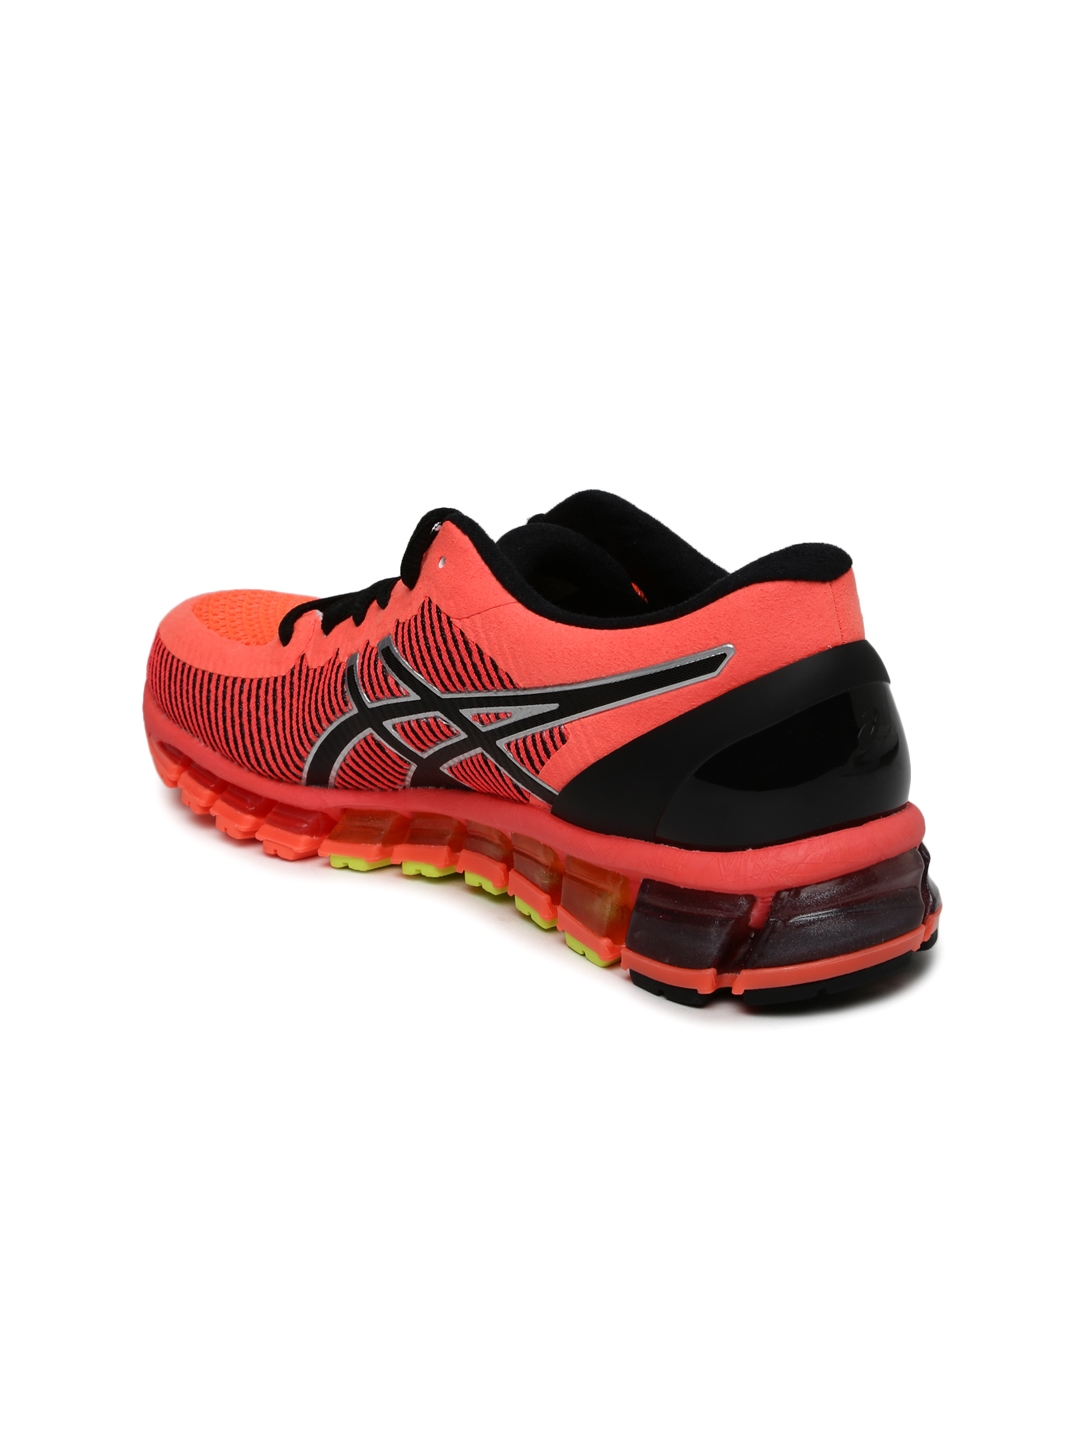 competitive price b4458 fd2c3 denmark asics women neon orange gel quantum 360 2 running shoes 8c6b3 e6848